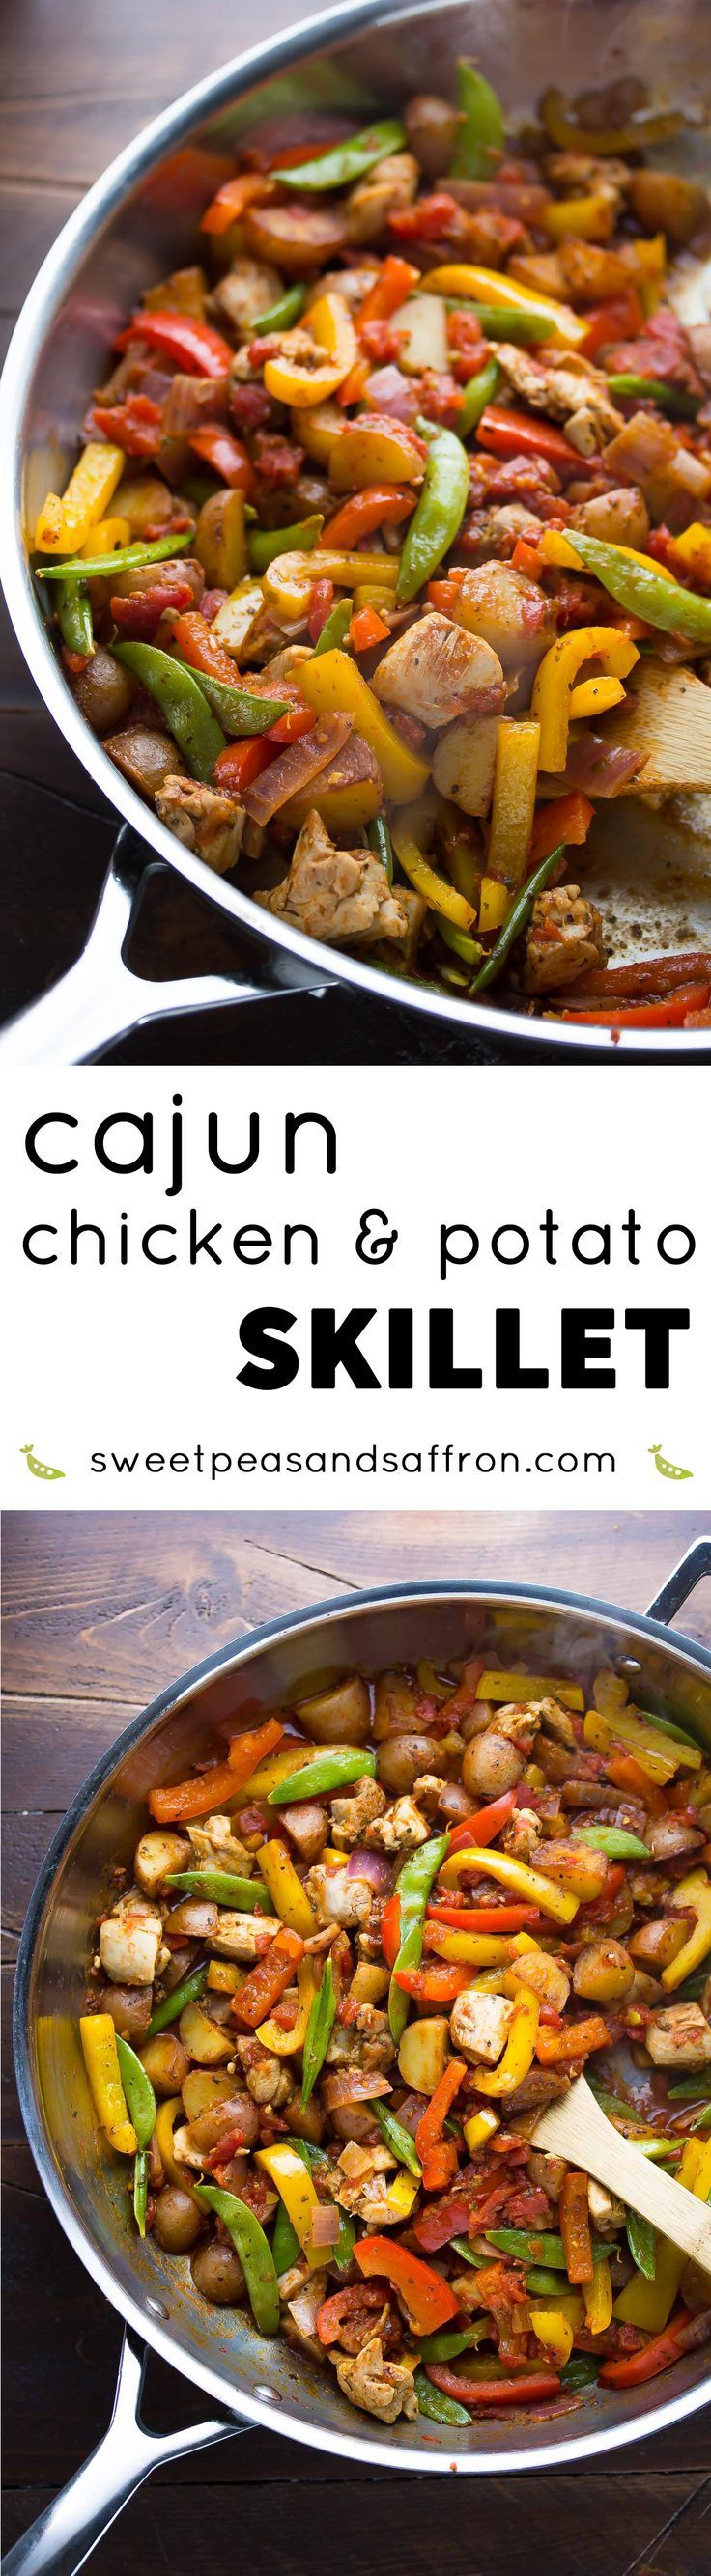 Chicken thighs are cooked with cajun-spiced potatoes, bell peppers and peas in this one pot, 30-minute paleo dinner recipe!